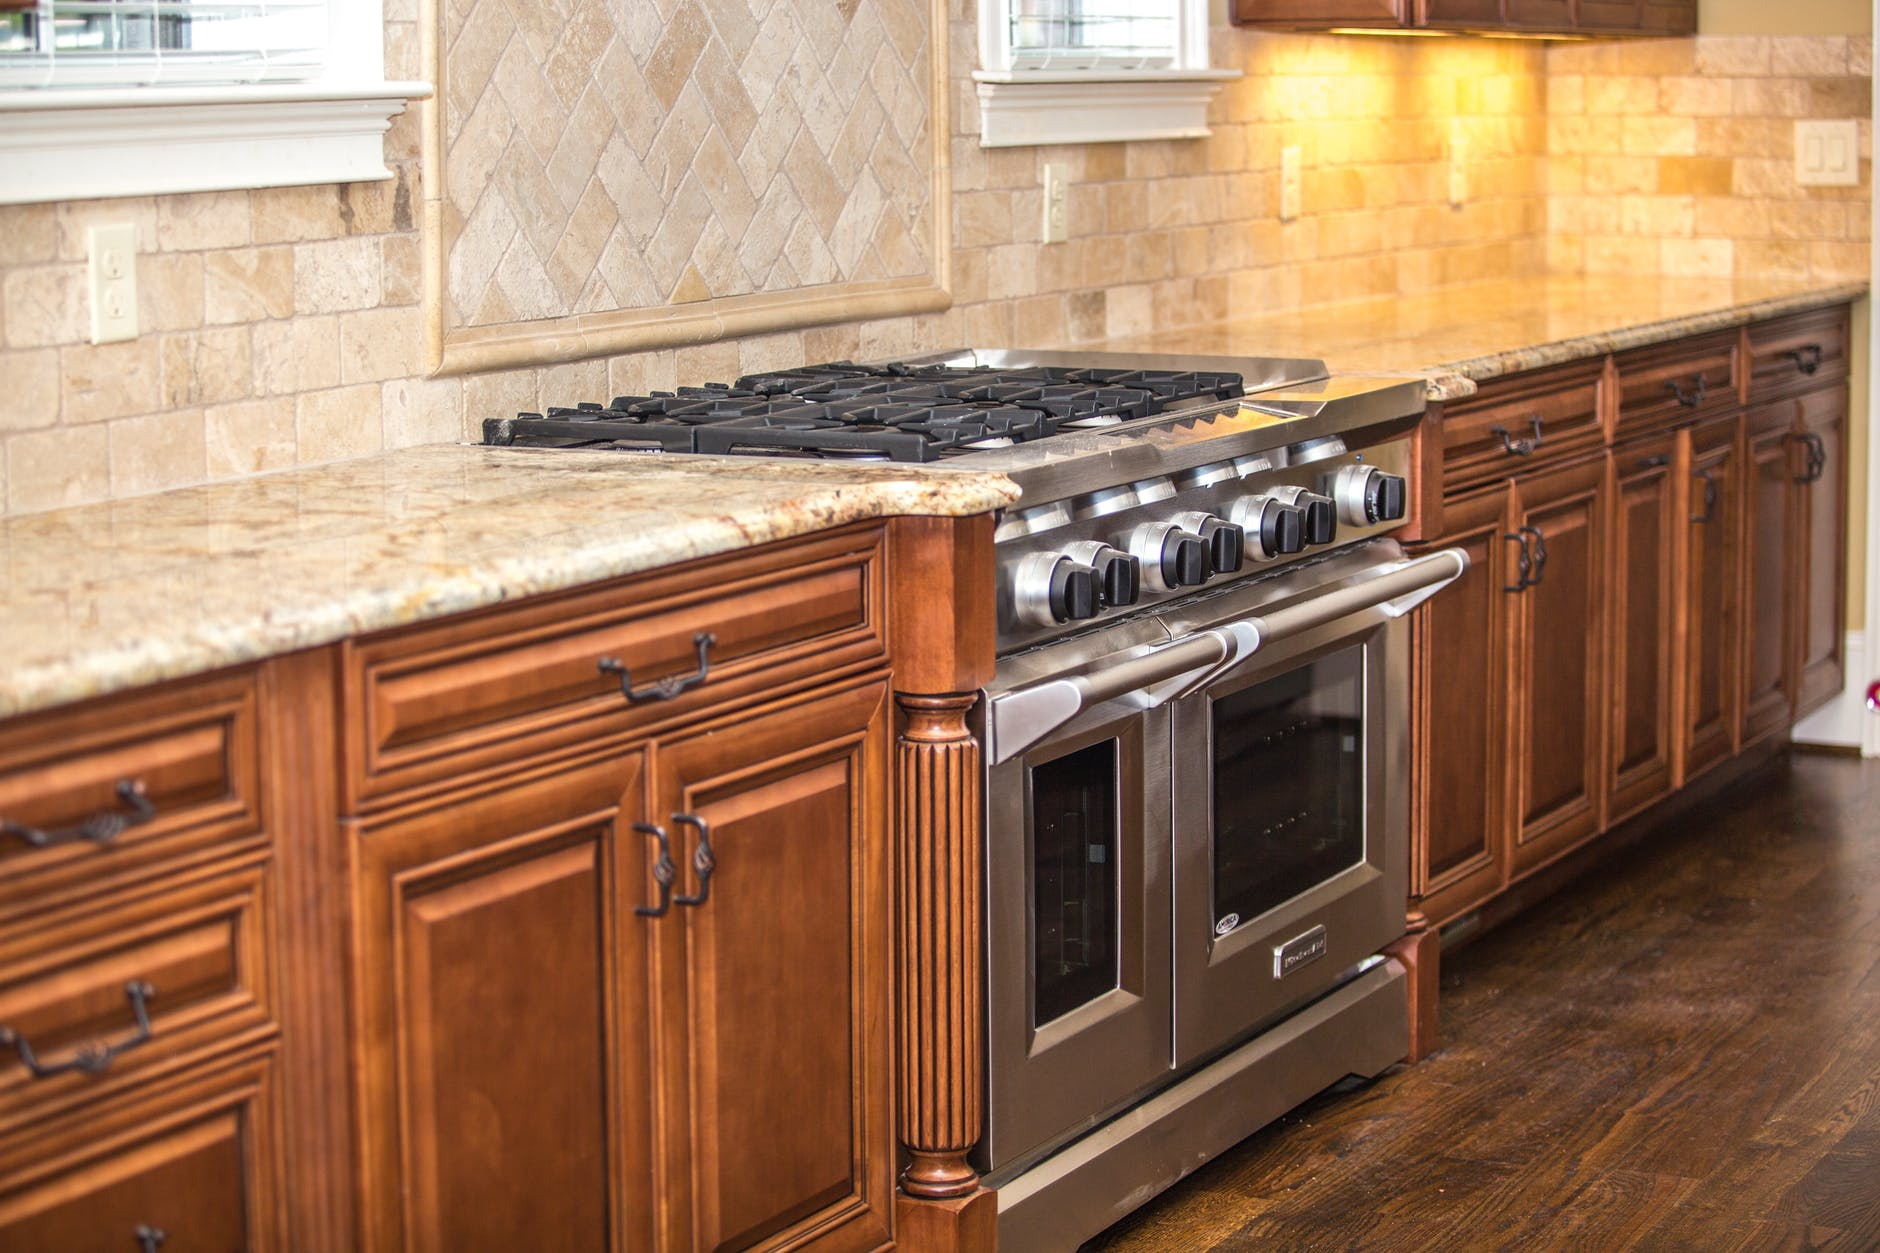 Installing a new kitchen in your home – how much does it cost?